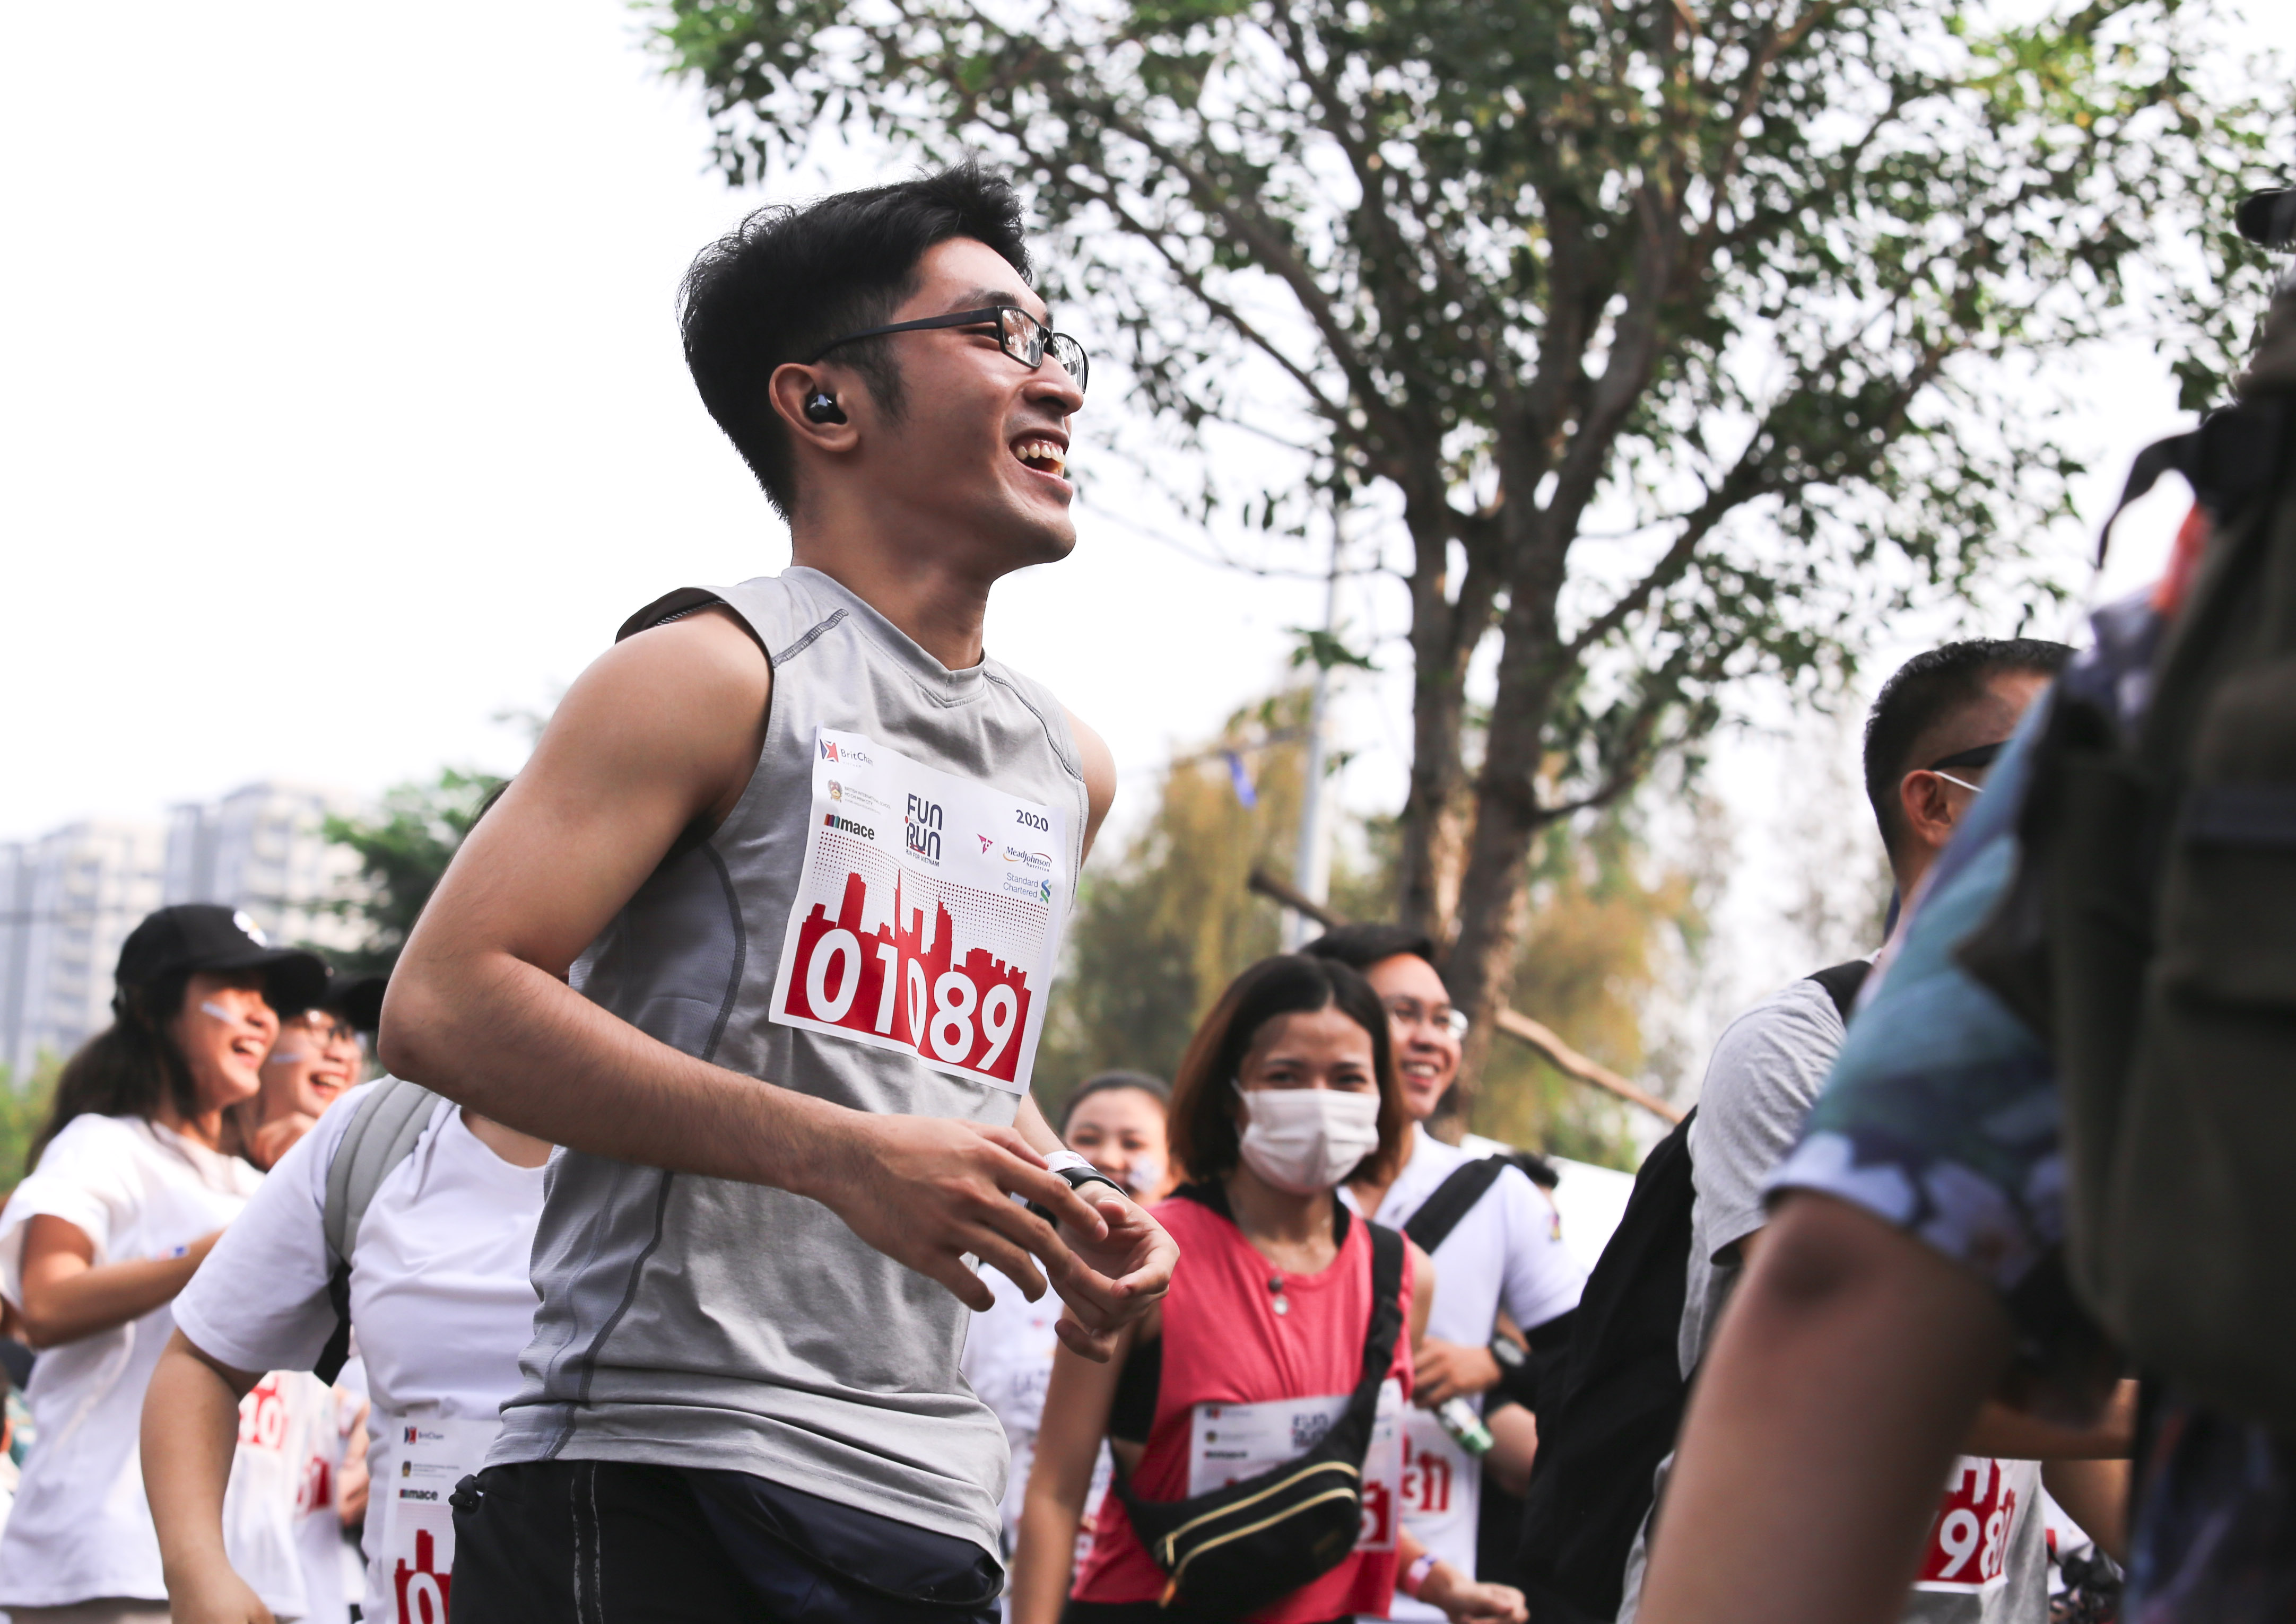 People are seen with enthusiasm at the 20th BritCham Charity Fun Run in Ho Chi Minh City on November 15,2020. Photo: Duc Khue/ Tuoi Tre